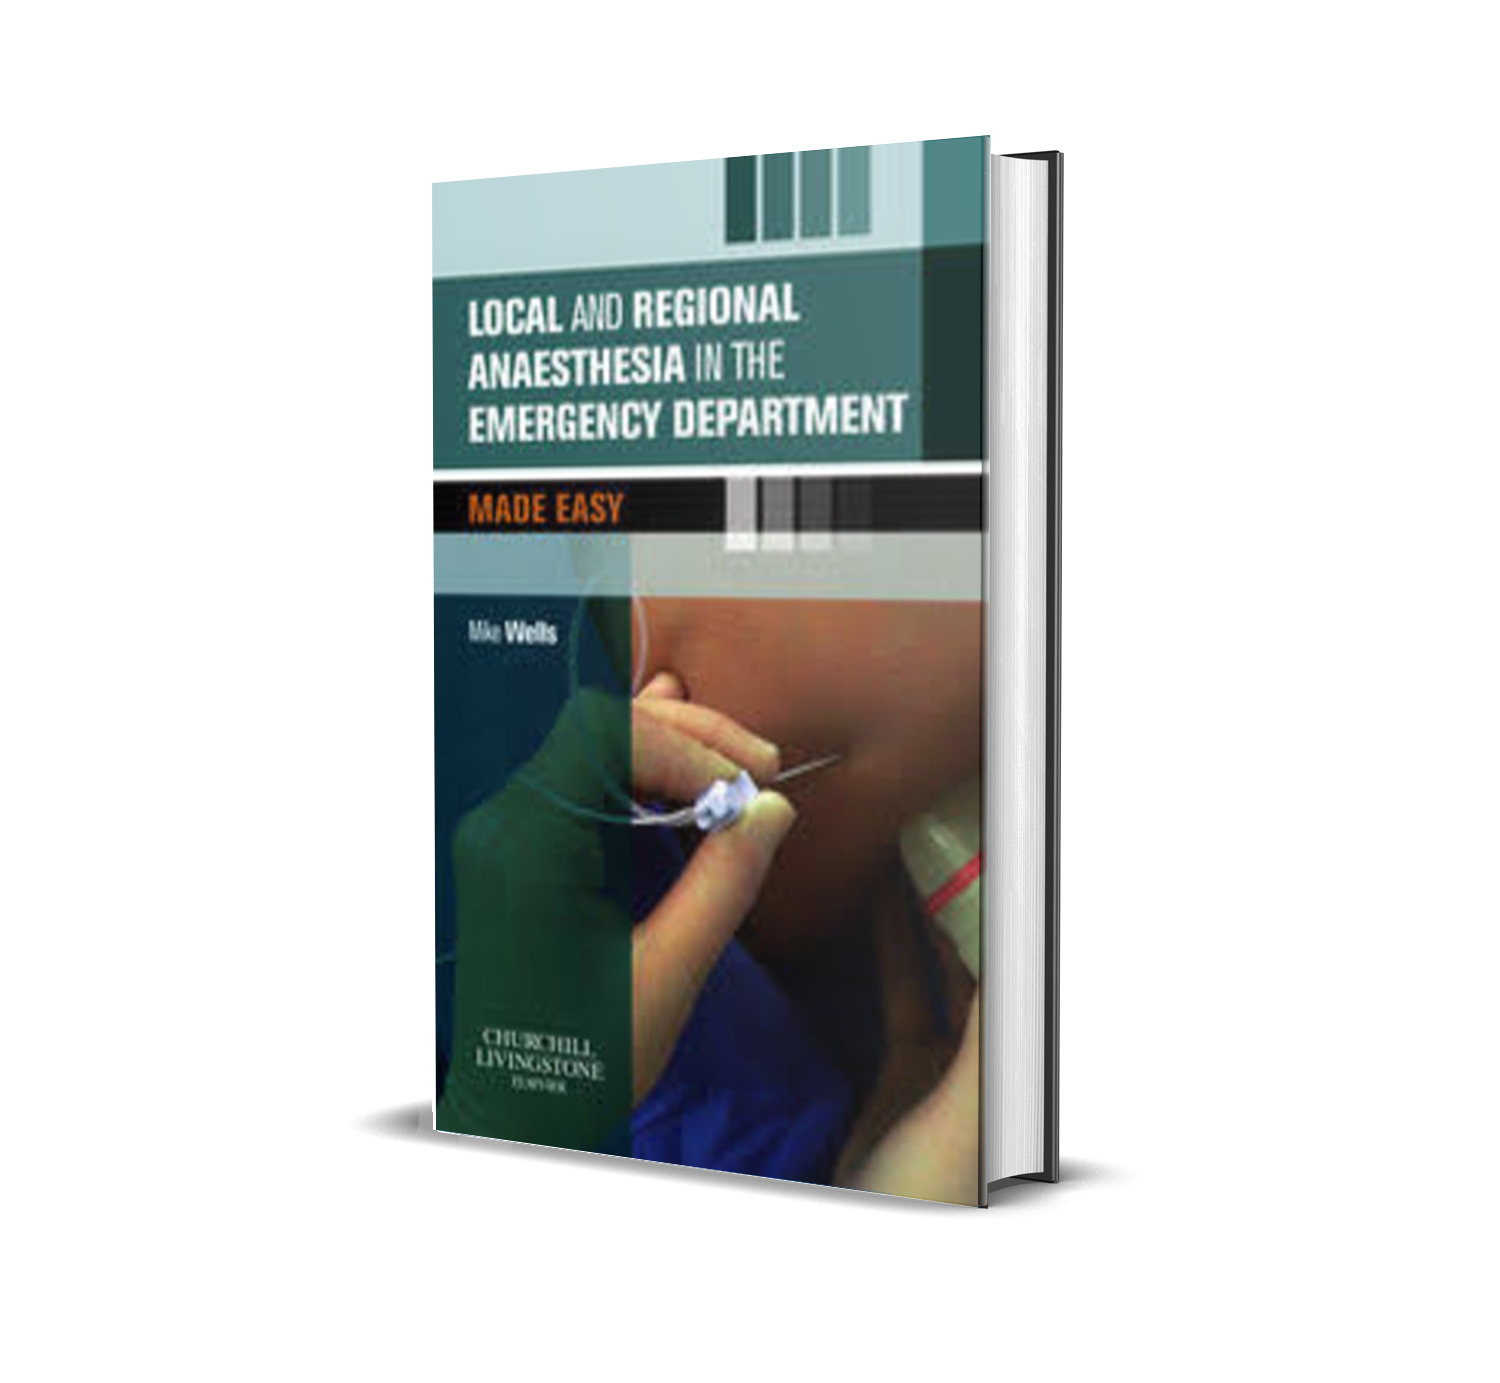 Local and regional anaesthesia in the emergency department made easy -Mike wells